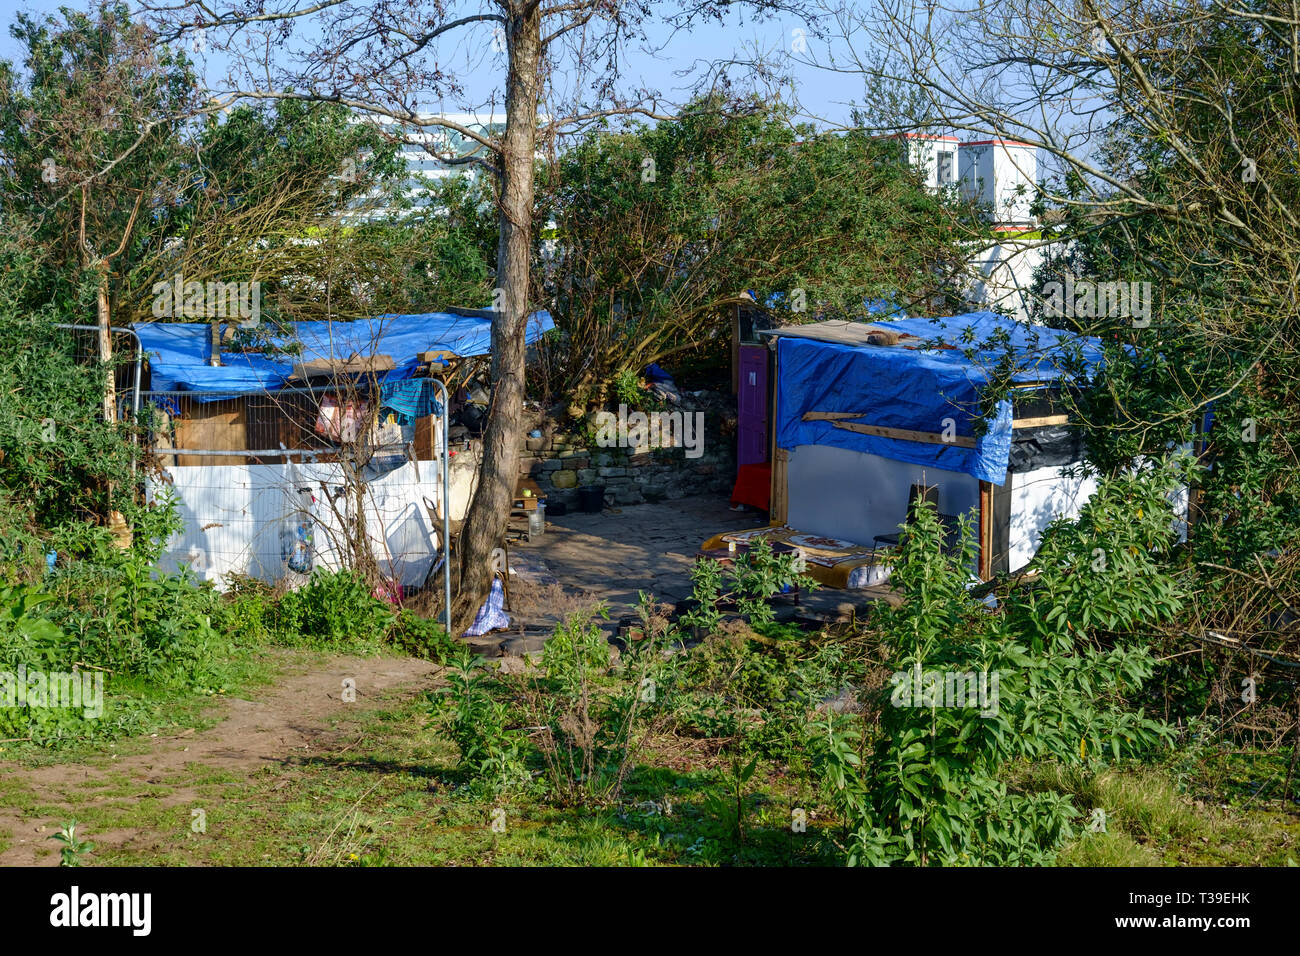 Homeless shelters in Bristol. Quite a few of these along the River Avon not far from temple meads. - Stock Image